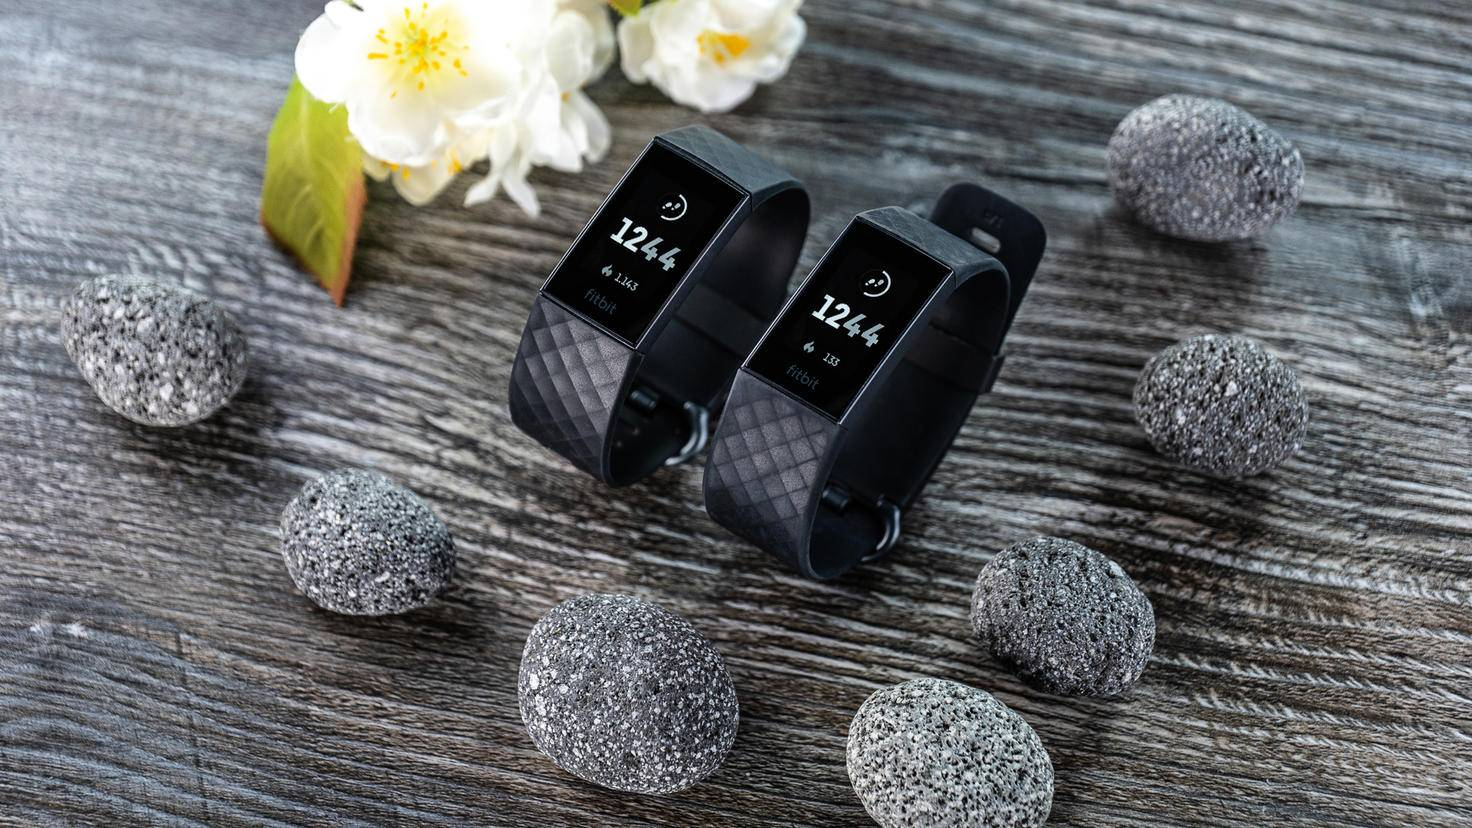 Fitbit Charge 4 et Fitbit Charge 3